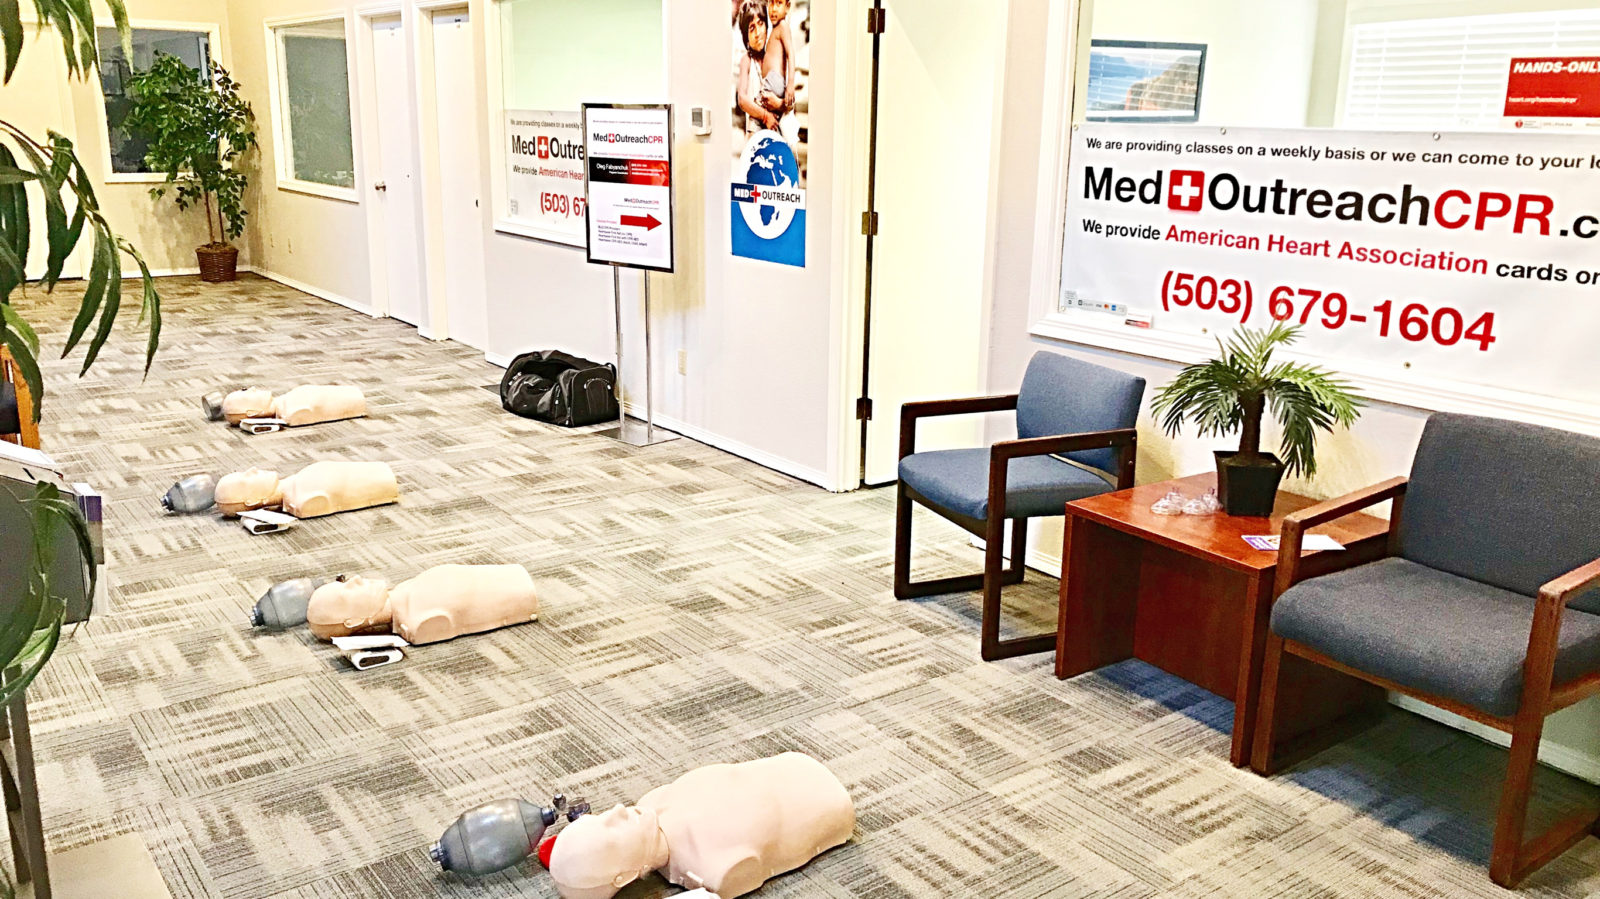 Medoutreach Cpr Bls Aed First Aid Portland Metro Area